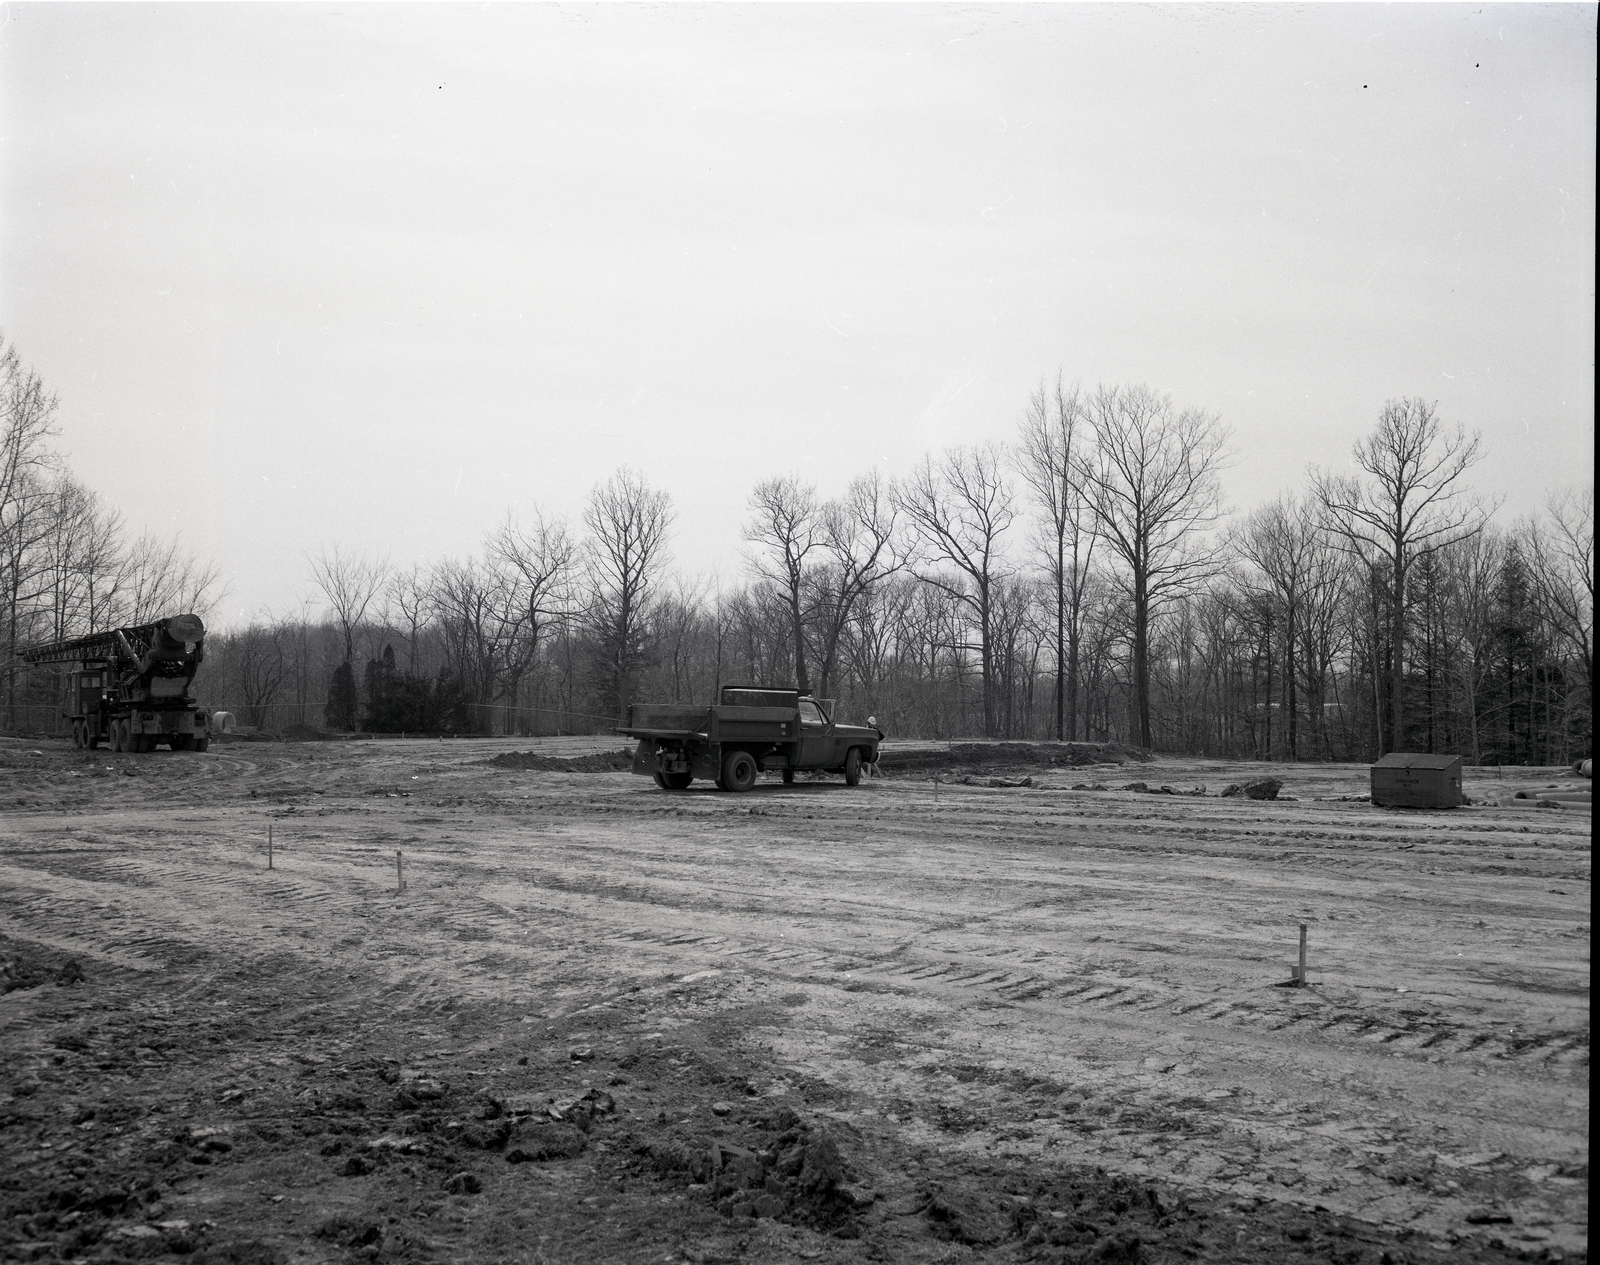 CONSTRUCTION OF THE RESEARCH ANALYSIS CENTER RAC BUILDING